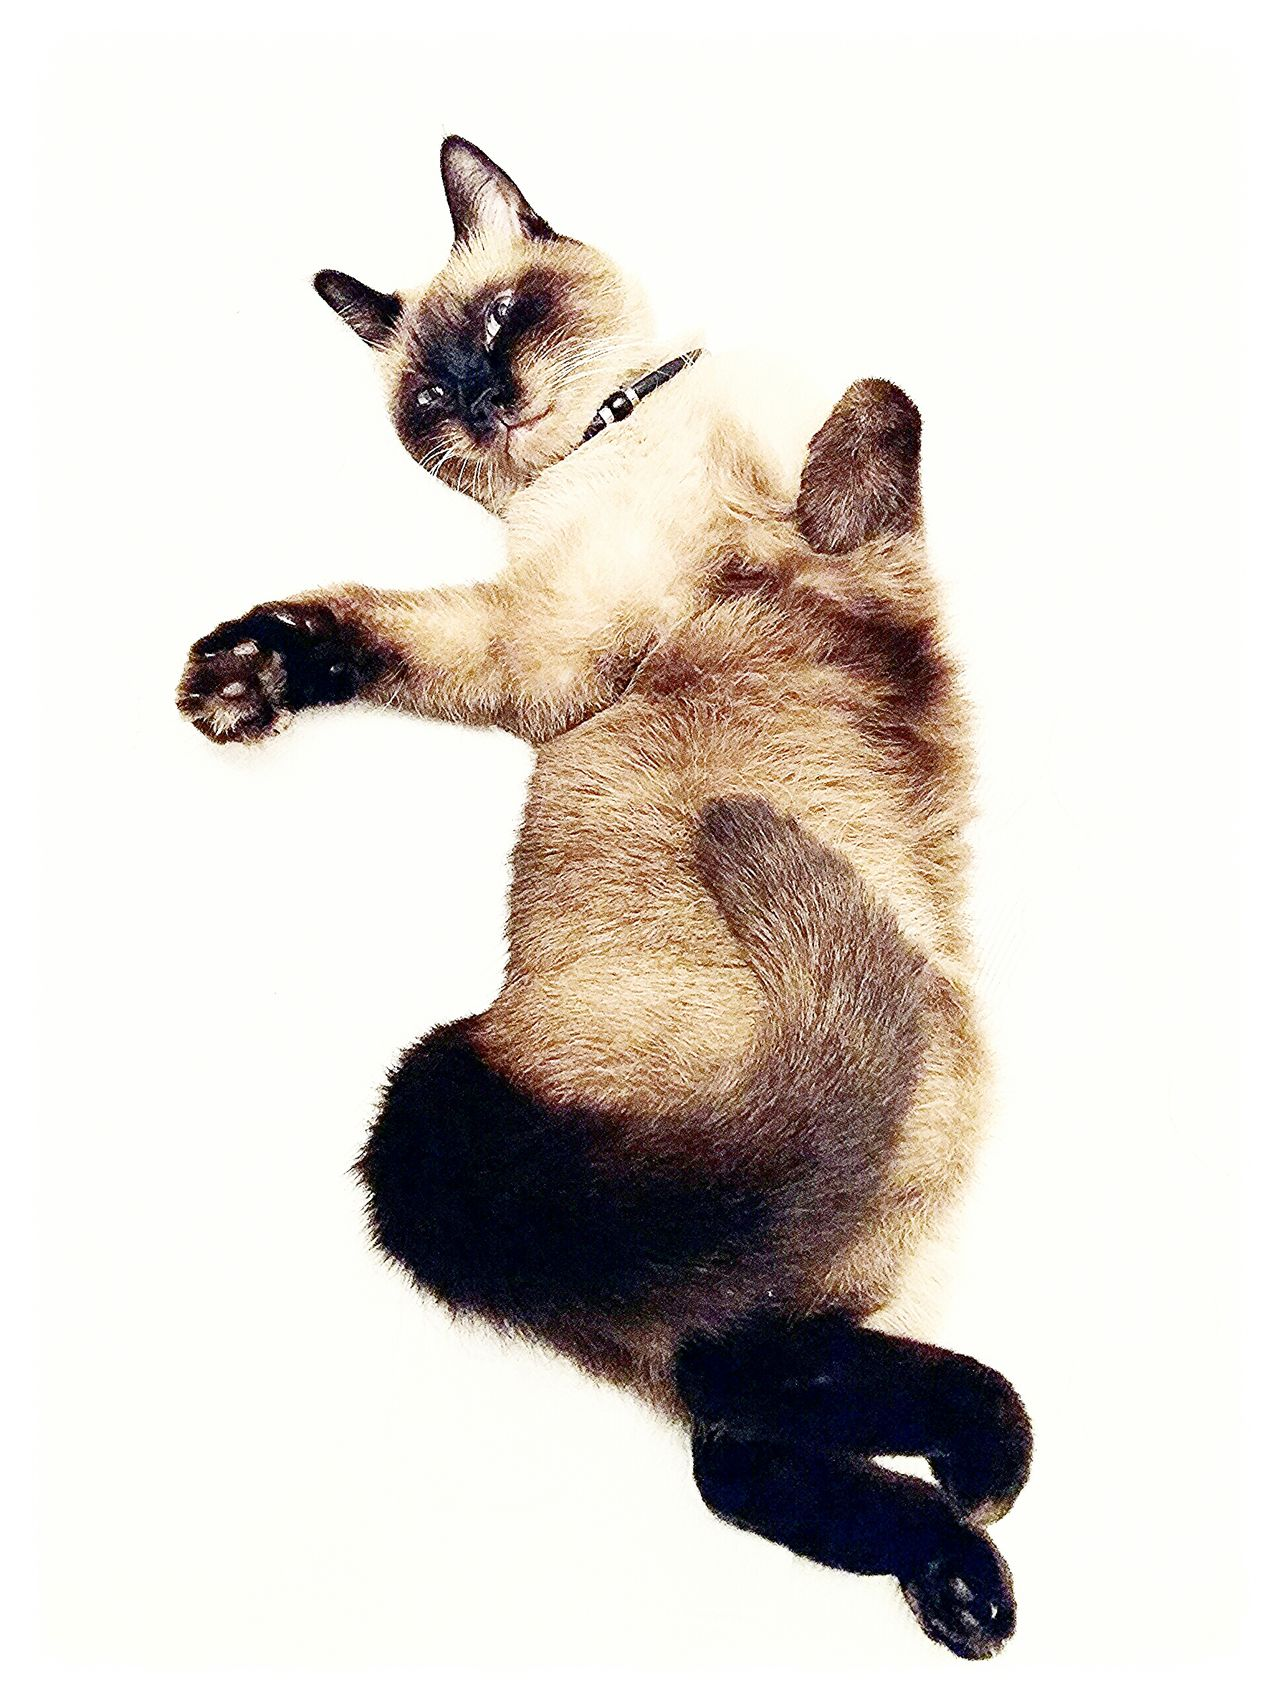 Cat Catlover Cat Photography Ragdoll Cat Model